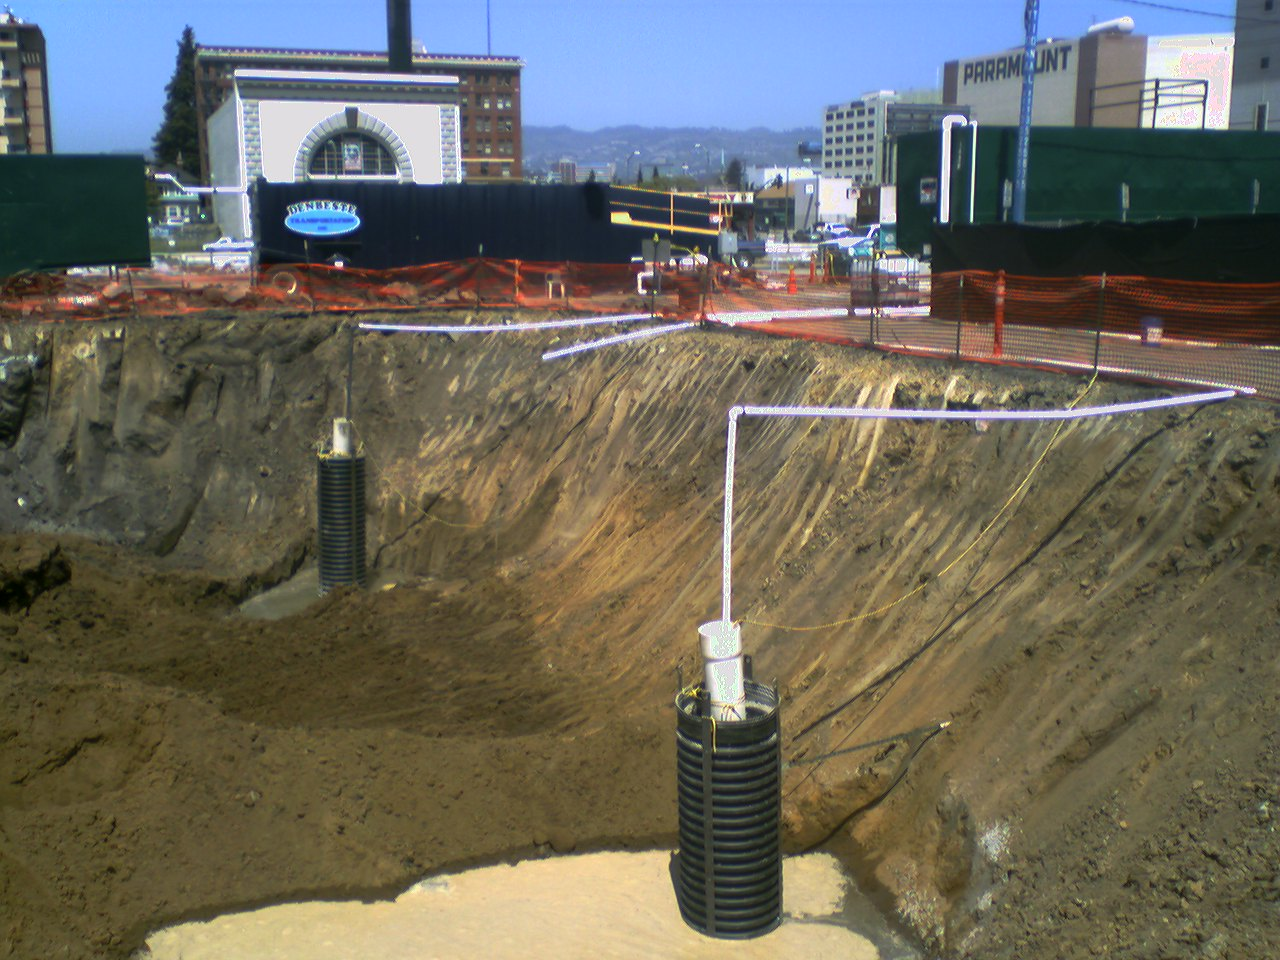 Groundwater extraction system at Uptown cleanup site